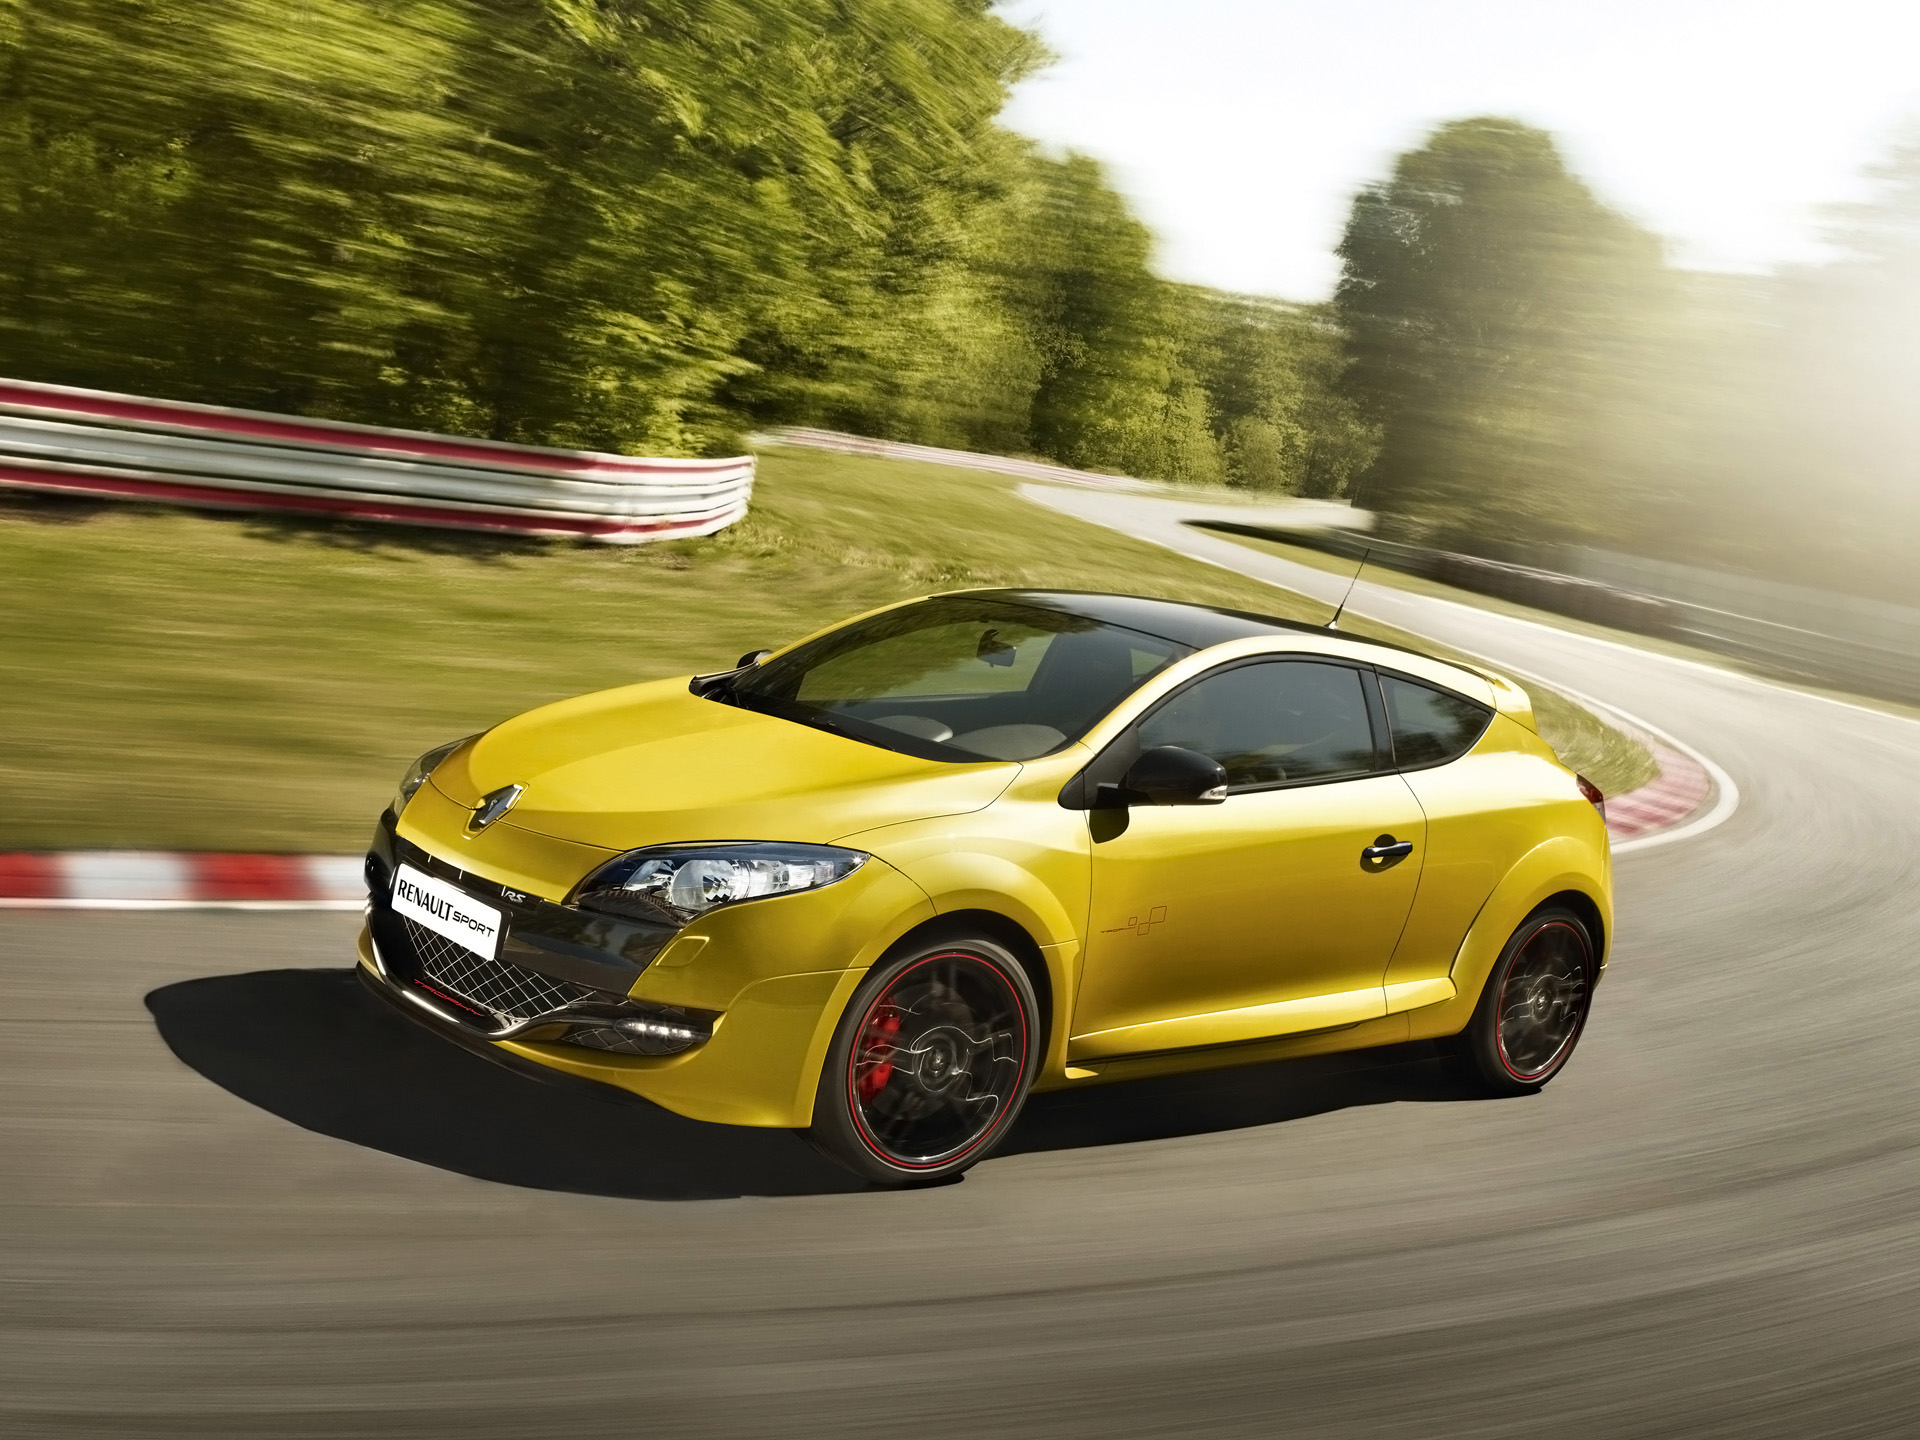 renault megane rs wallpaper full hd pictures. Black Bedroom Furniture Sets. Home Design Ideas